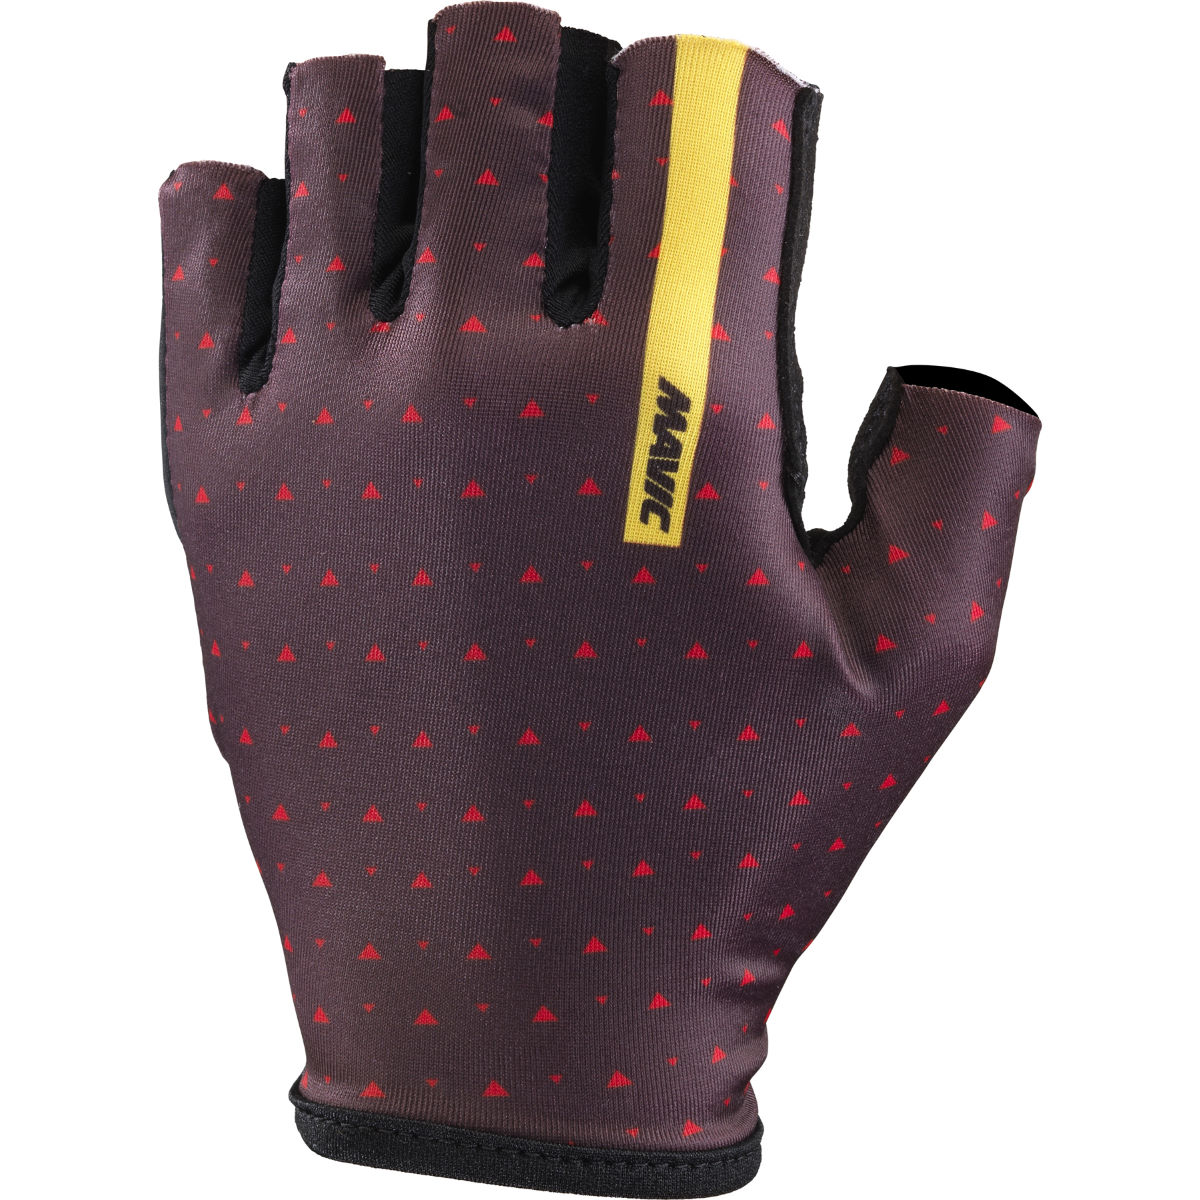 Gants courts Femme Mavic Sequence - M Fig/Hibiscus  Gants